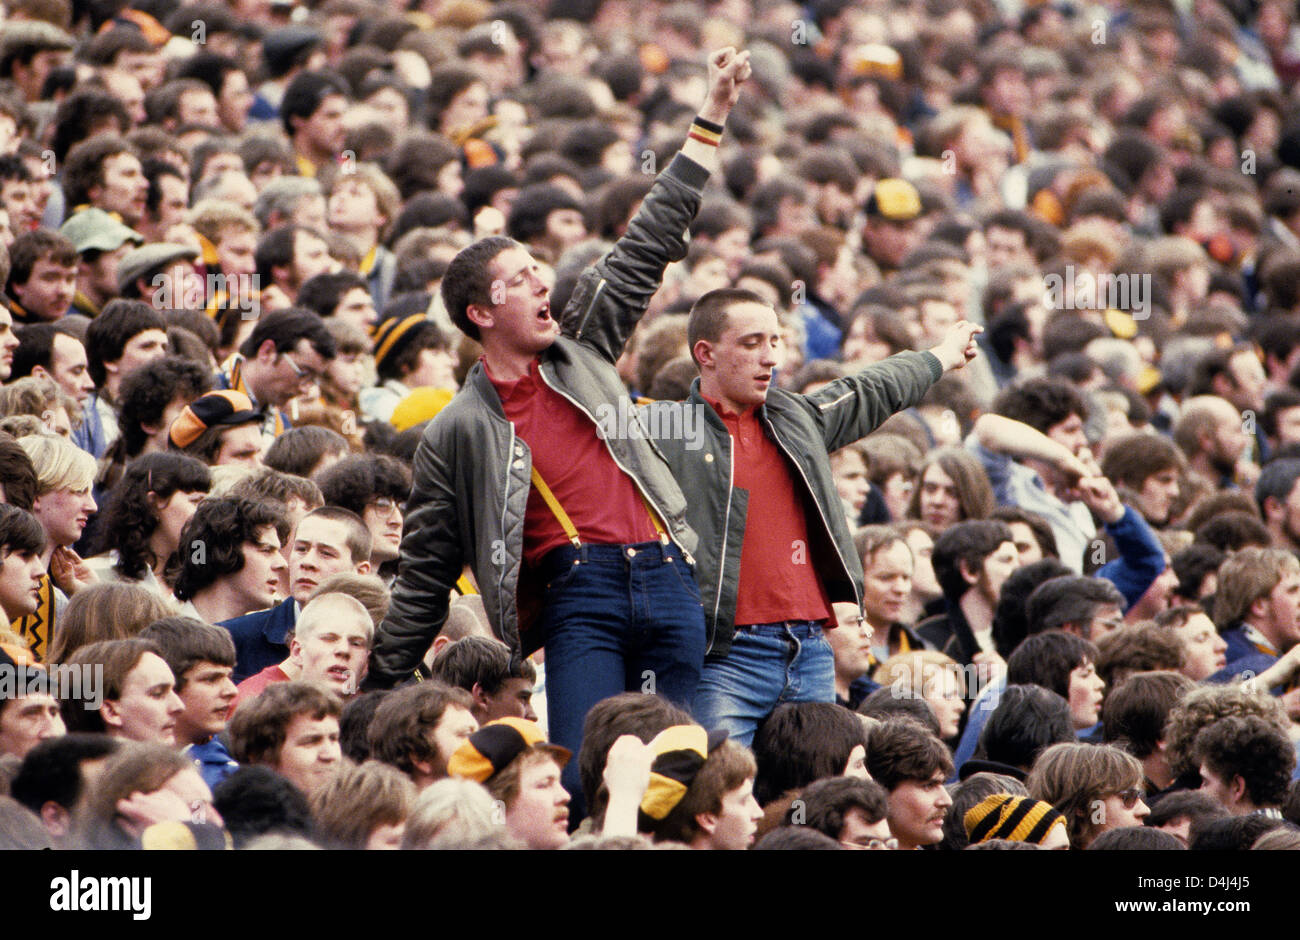 Football Fans In Crowd At Hillsborough 1981 Spurs V Wolves FA Cup Semi Final Hillsbrough Supporters